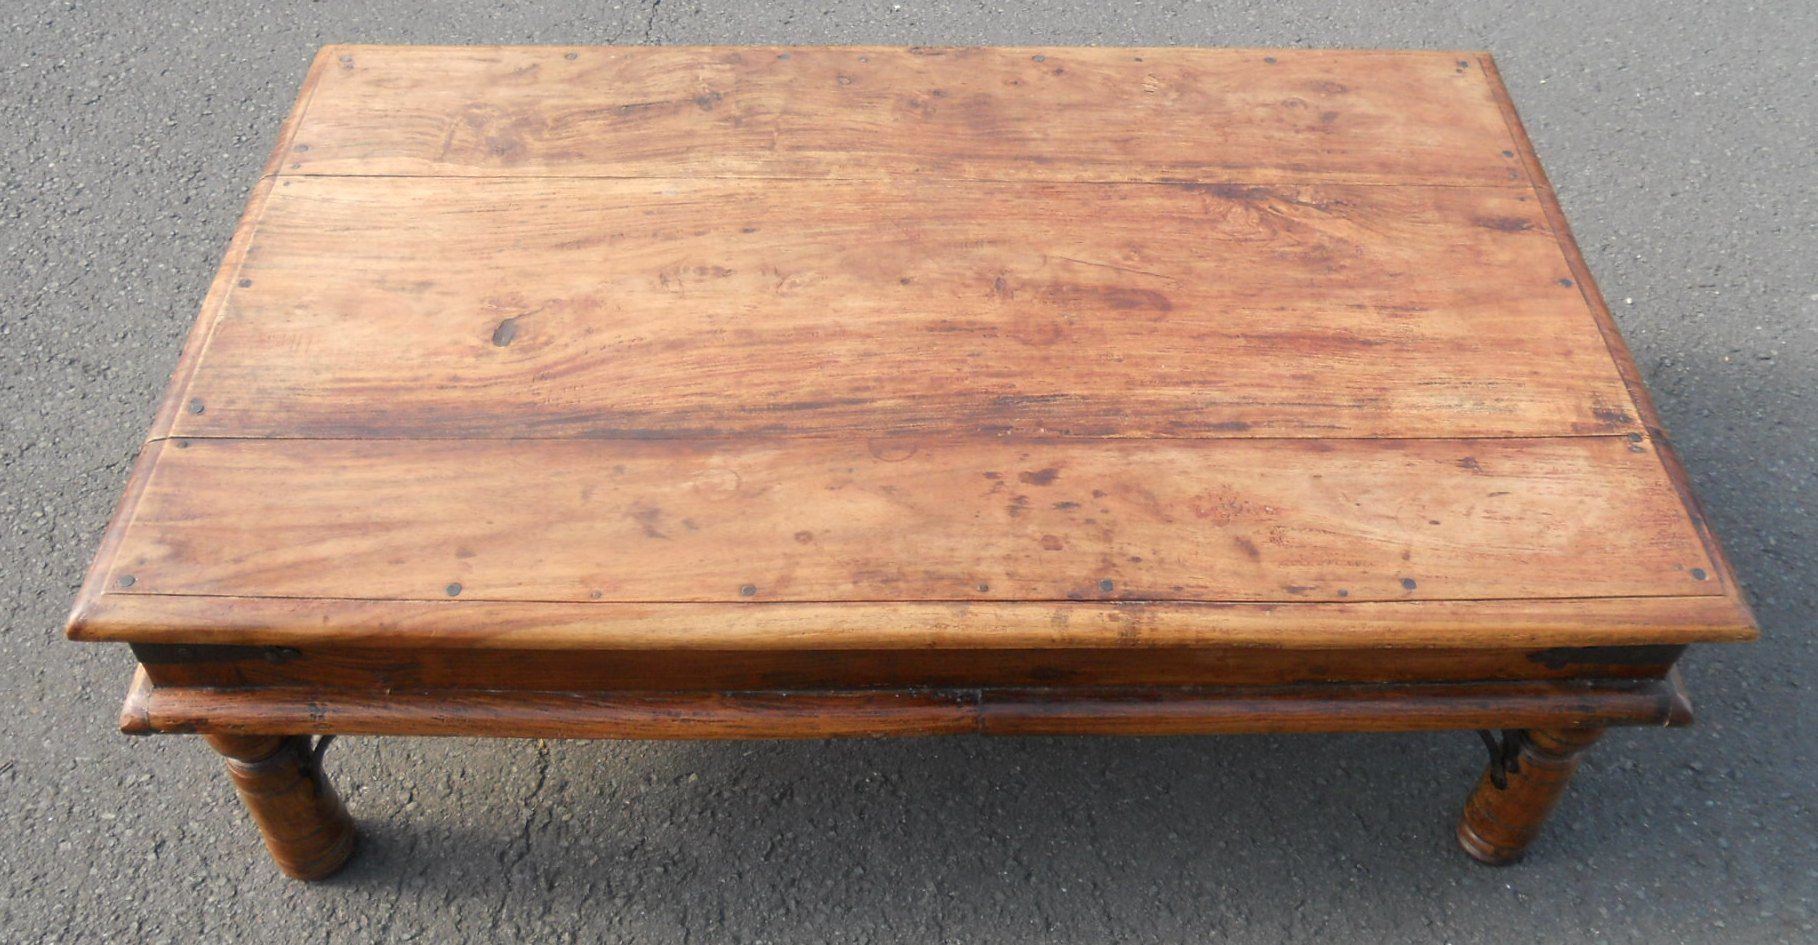 Sold large rustic wooden coffee table for Large wooden coffee tables